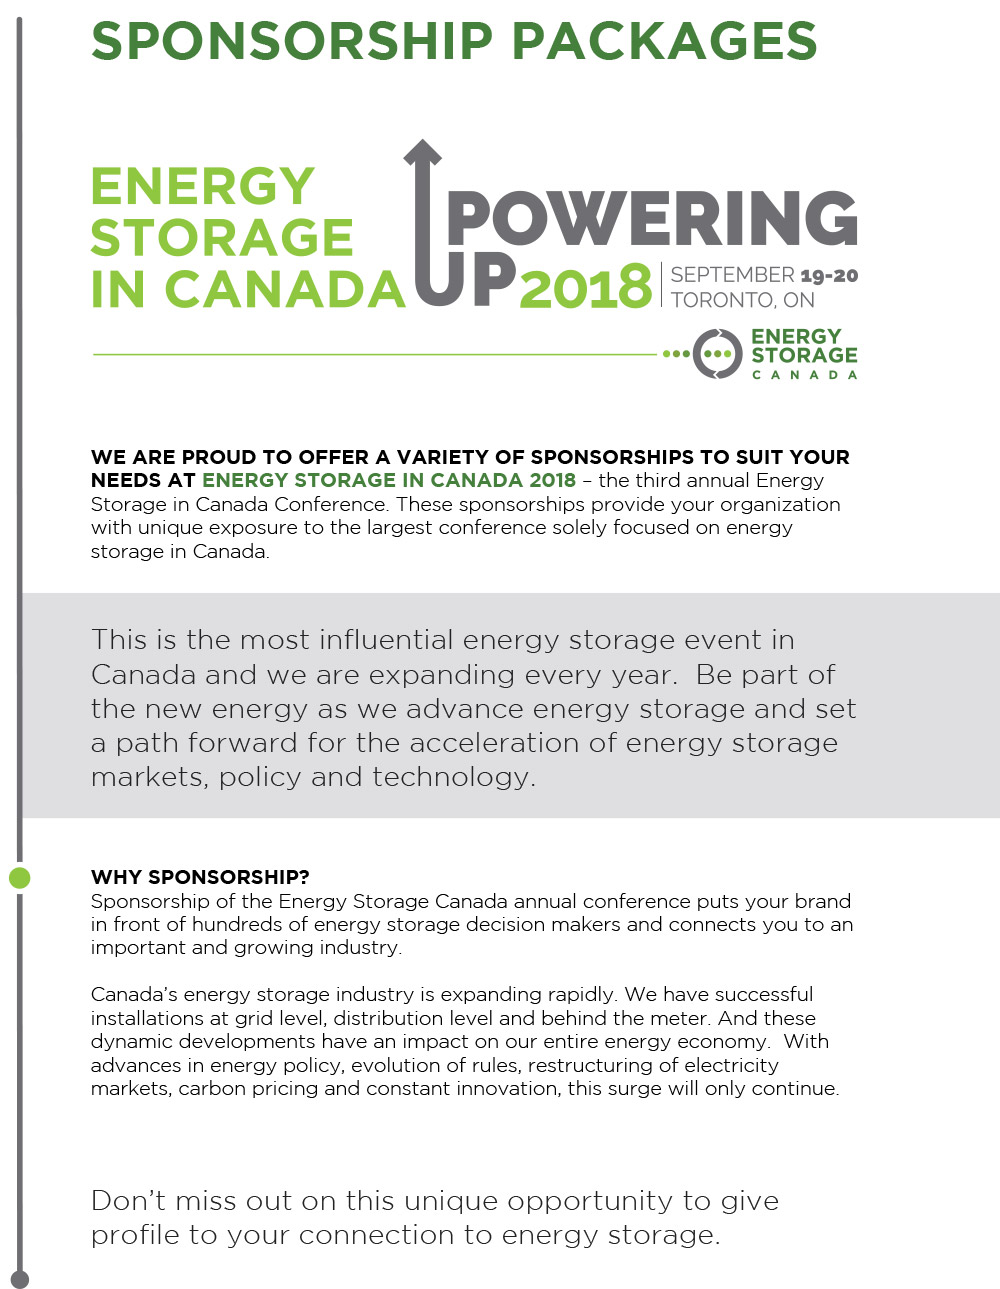 ENERGY-STORAGE-IN-CANADA---2018-SPONSORSHIP-PACKAGE-1-1.jpg